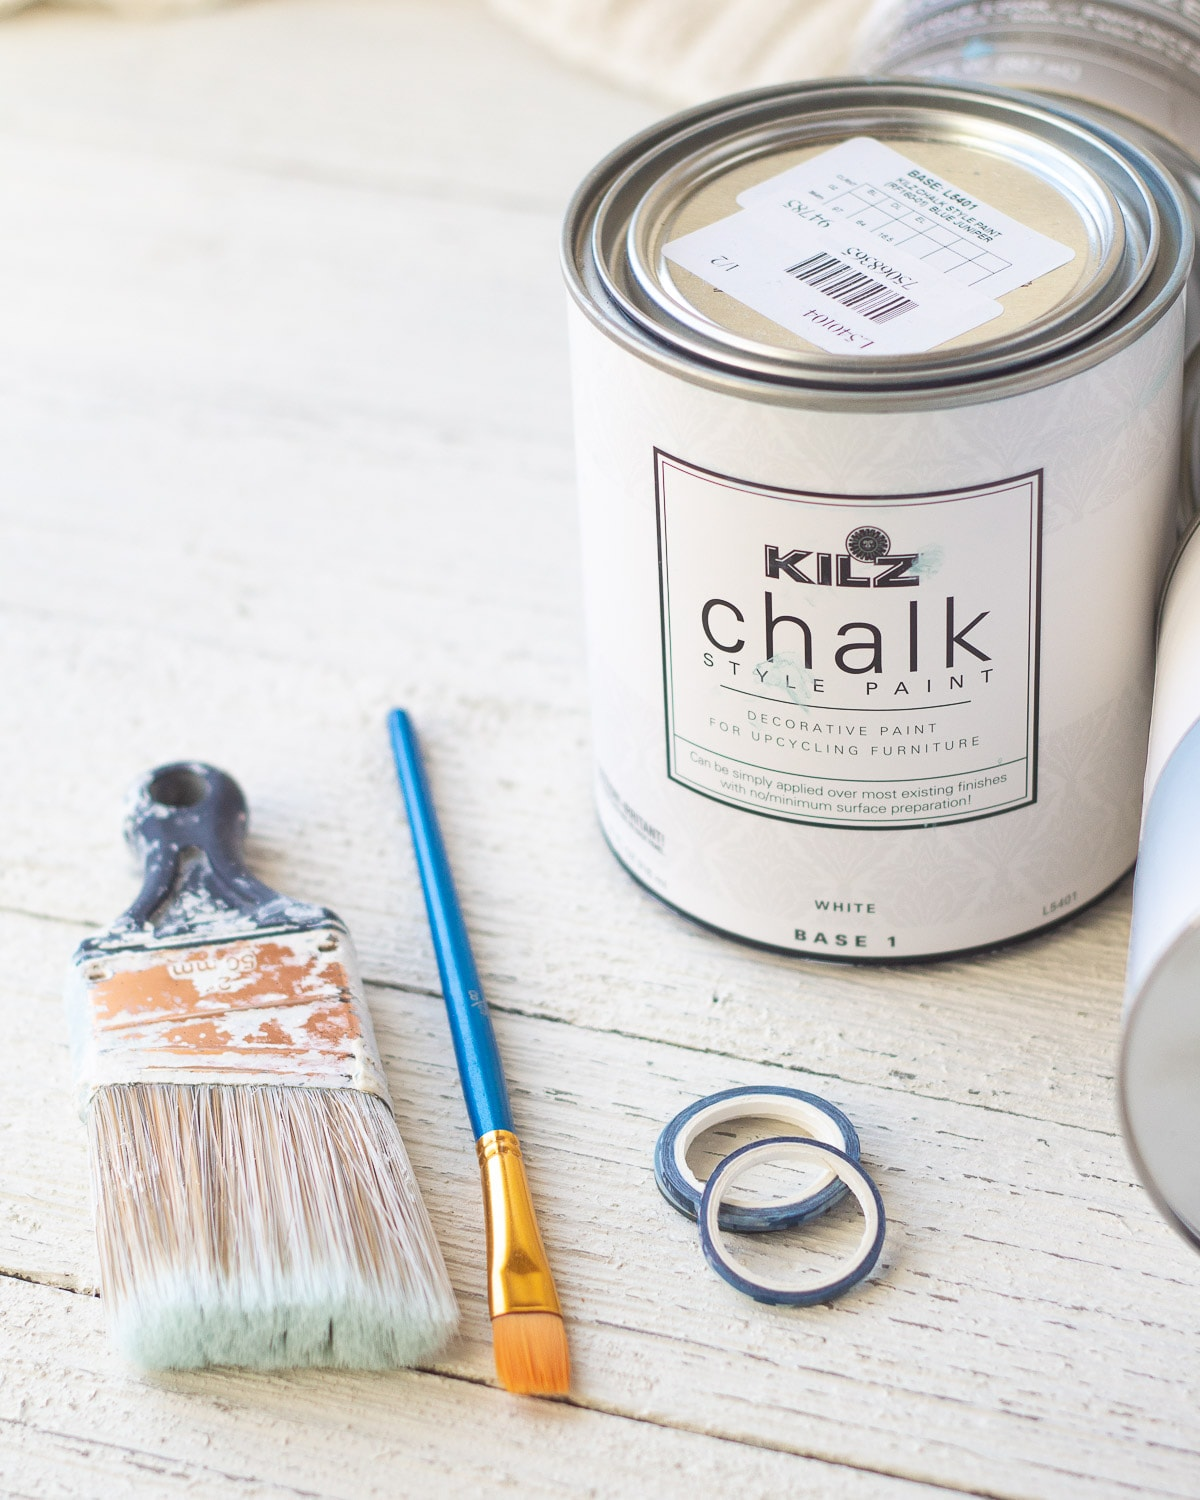 Paint brushes, washi tape, and a can of chalk style paint.